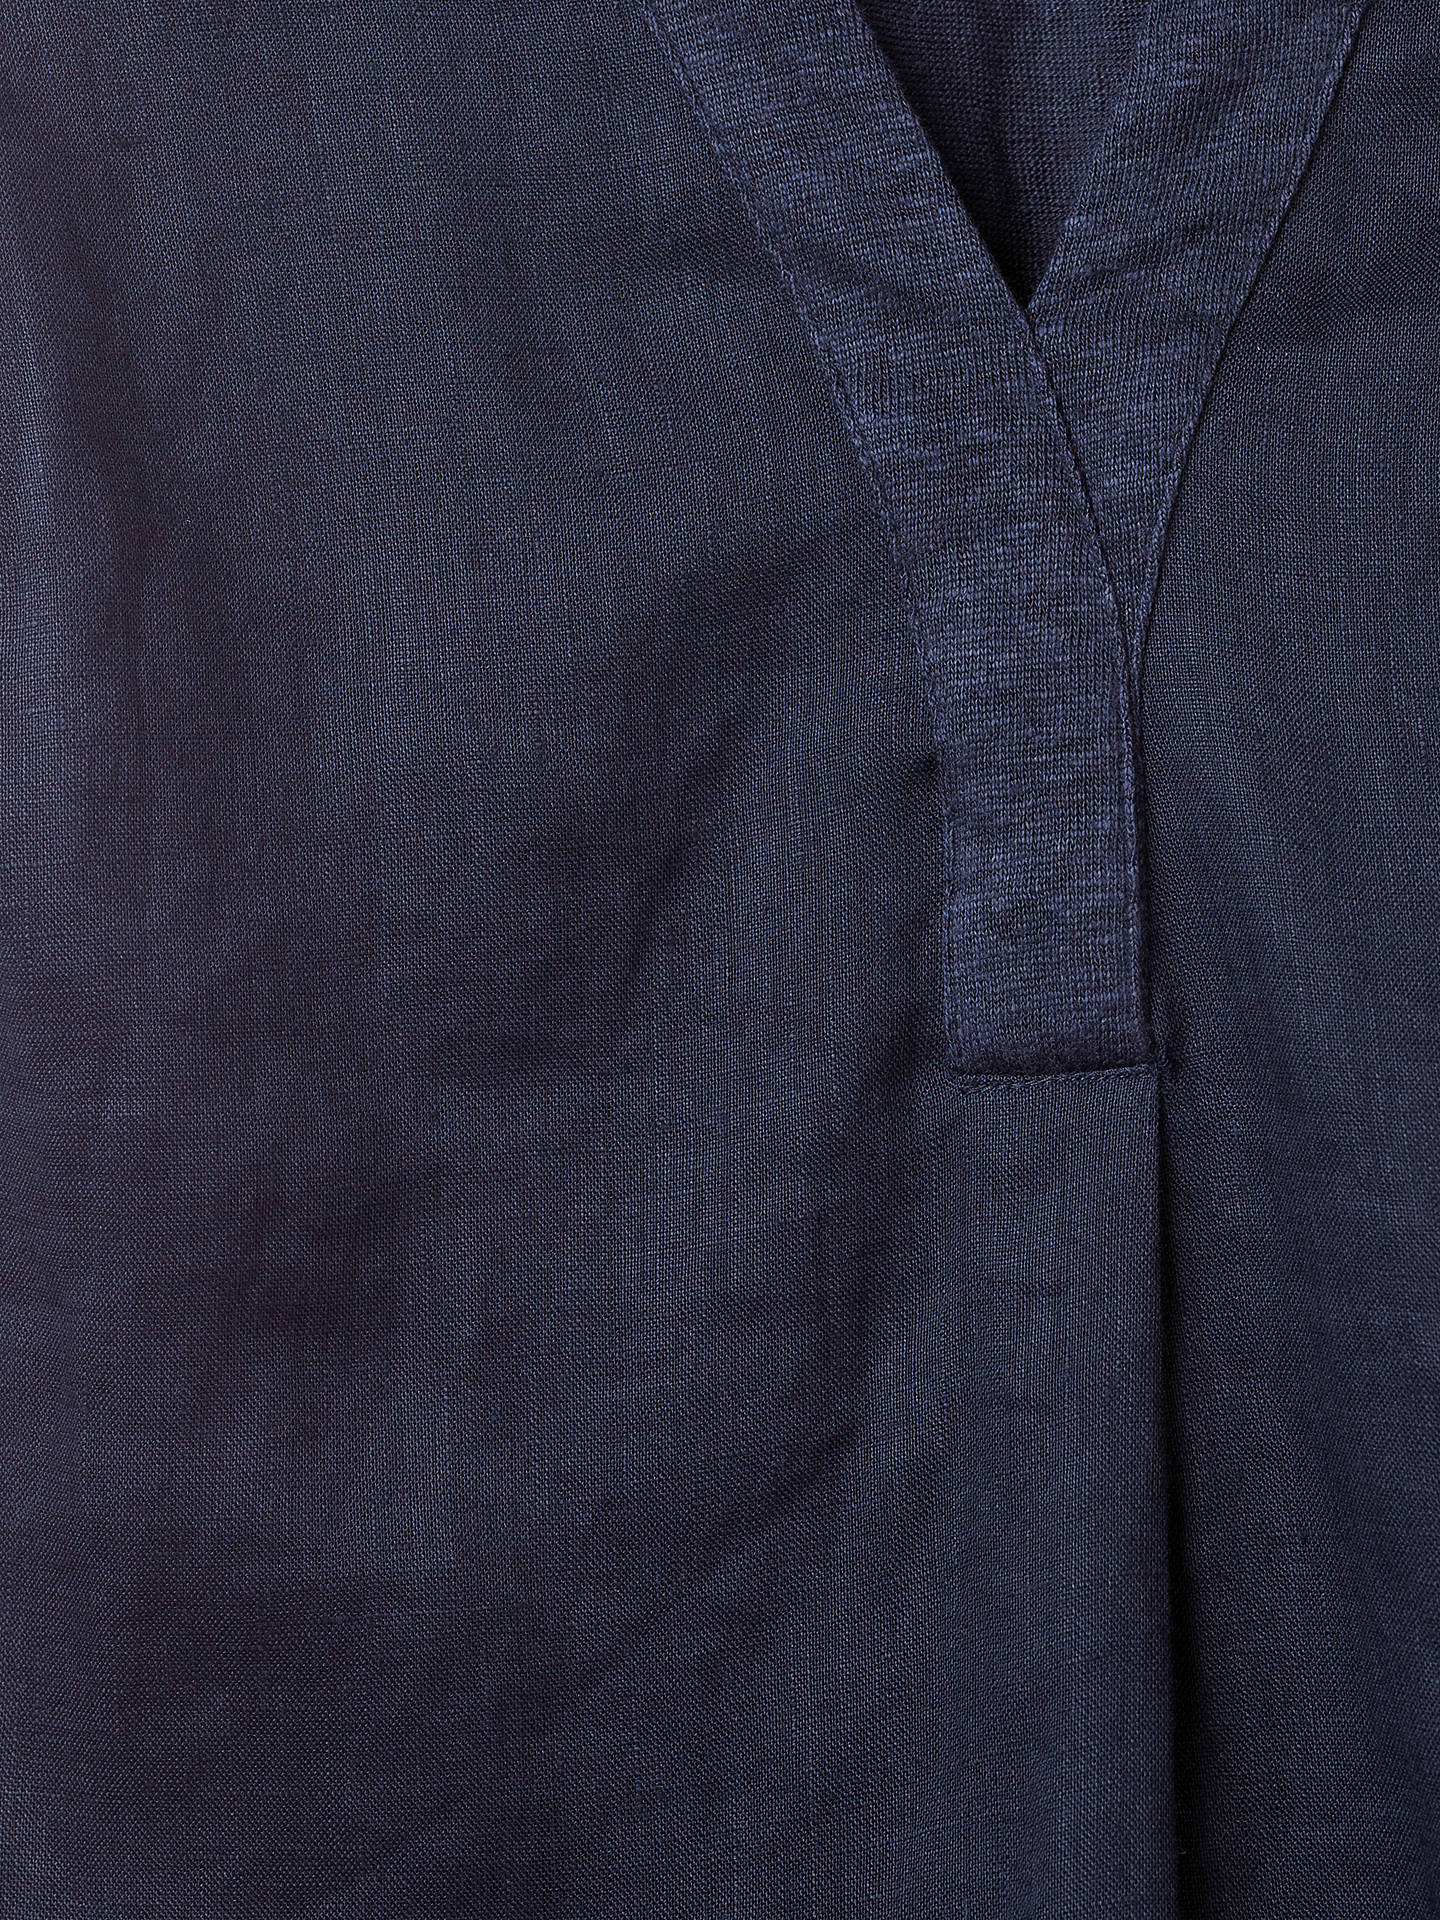 Buy White Stuff Pickle Linen Jersey Shirt, Navy, 16 Online at johnlewis.com